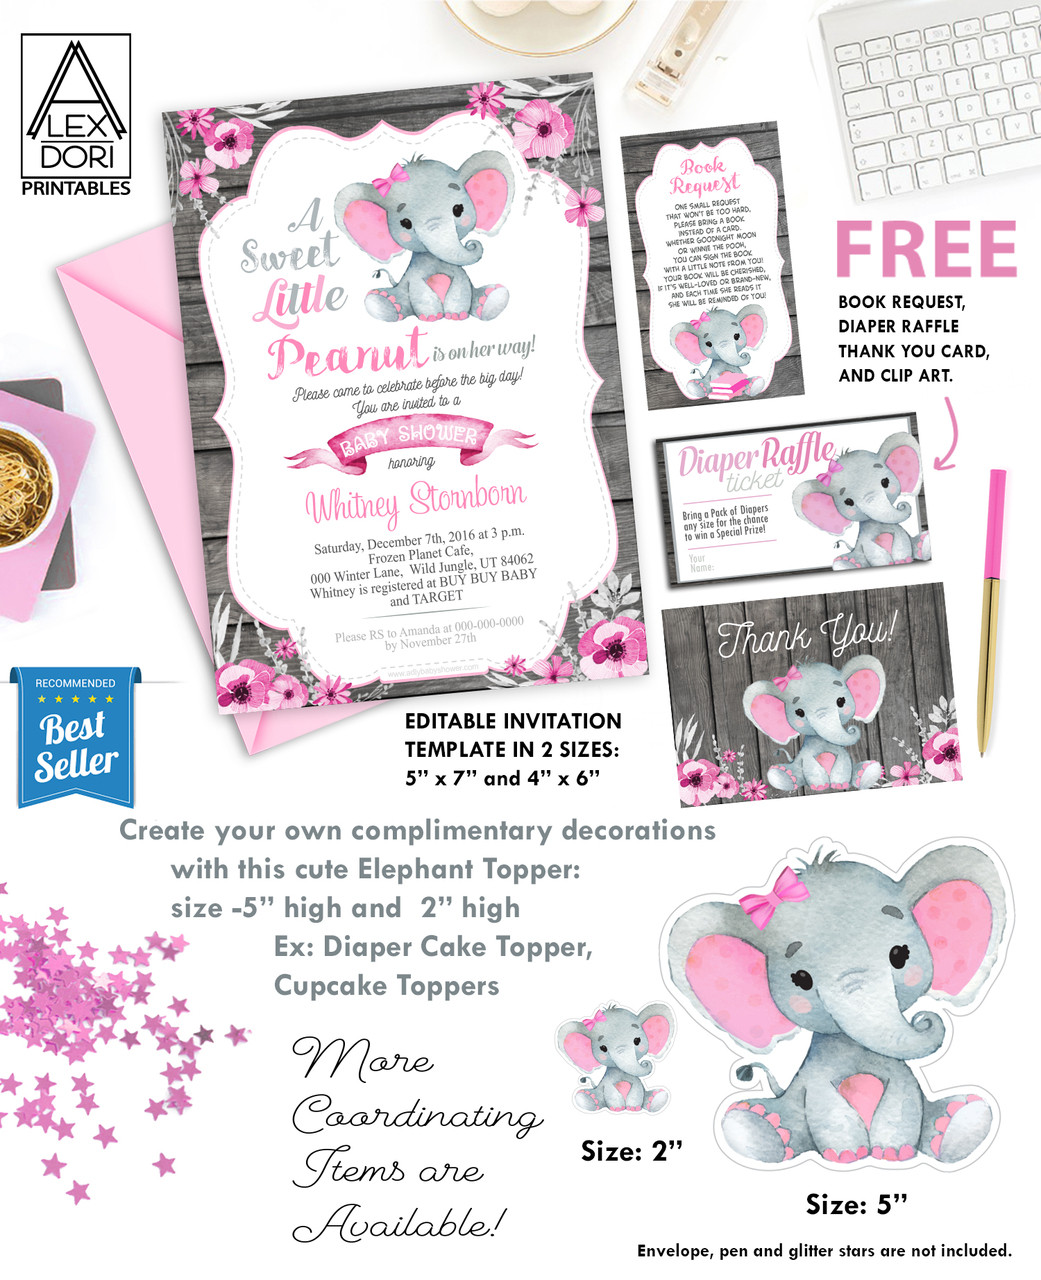 picture regarding Free Printable Elephant Baby Shower referred to as Lady Elephant purple and grey Child Shower Invitation, Wood Record -Printable Invitation - Peanut Invite-Lady Kid Shower-No cost Diaper Raffle